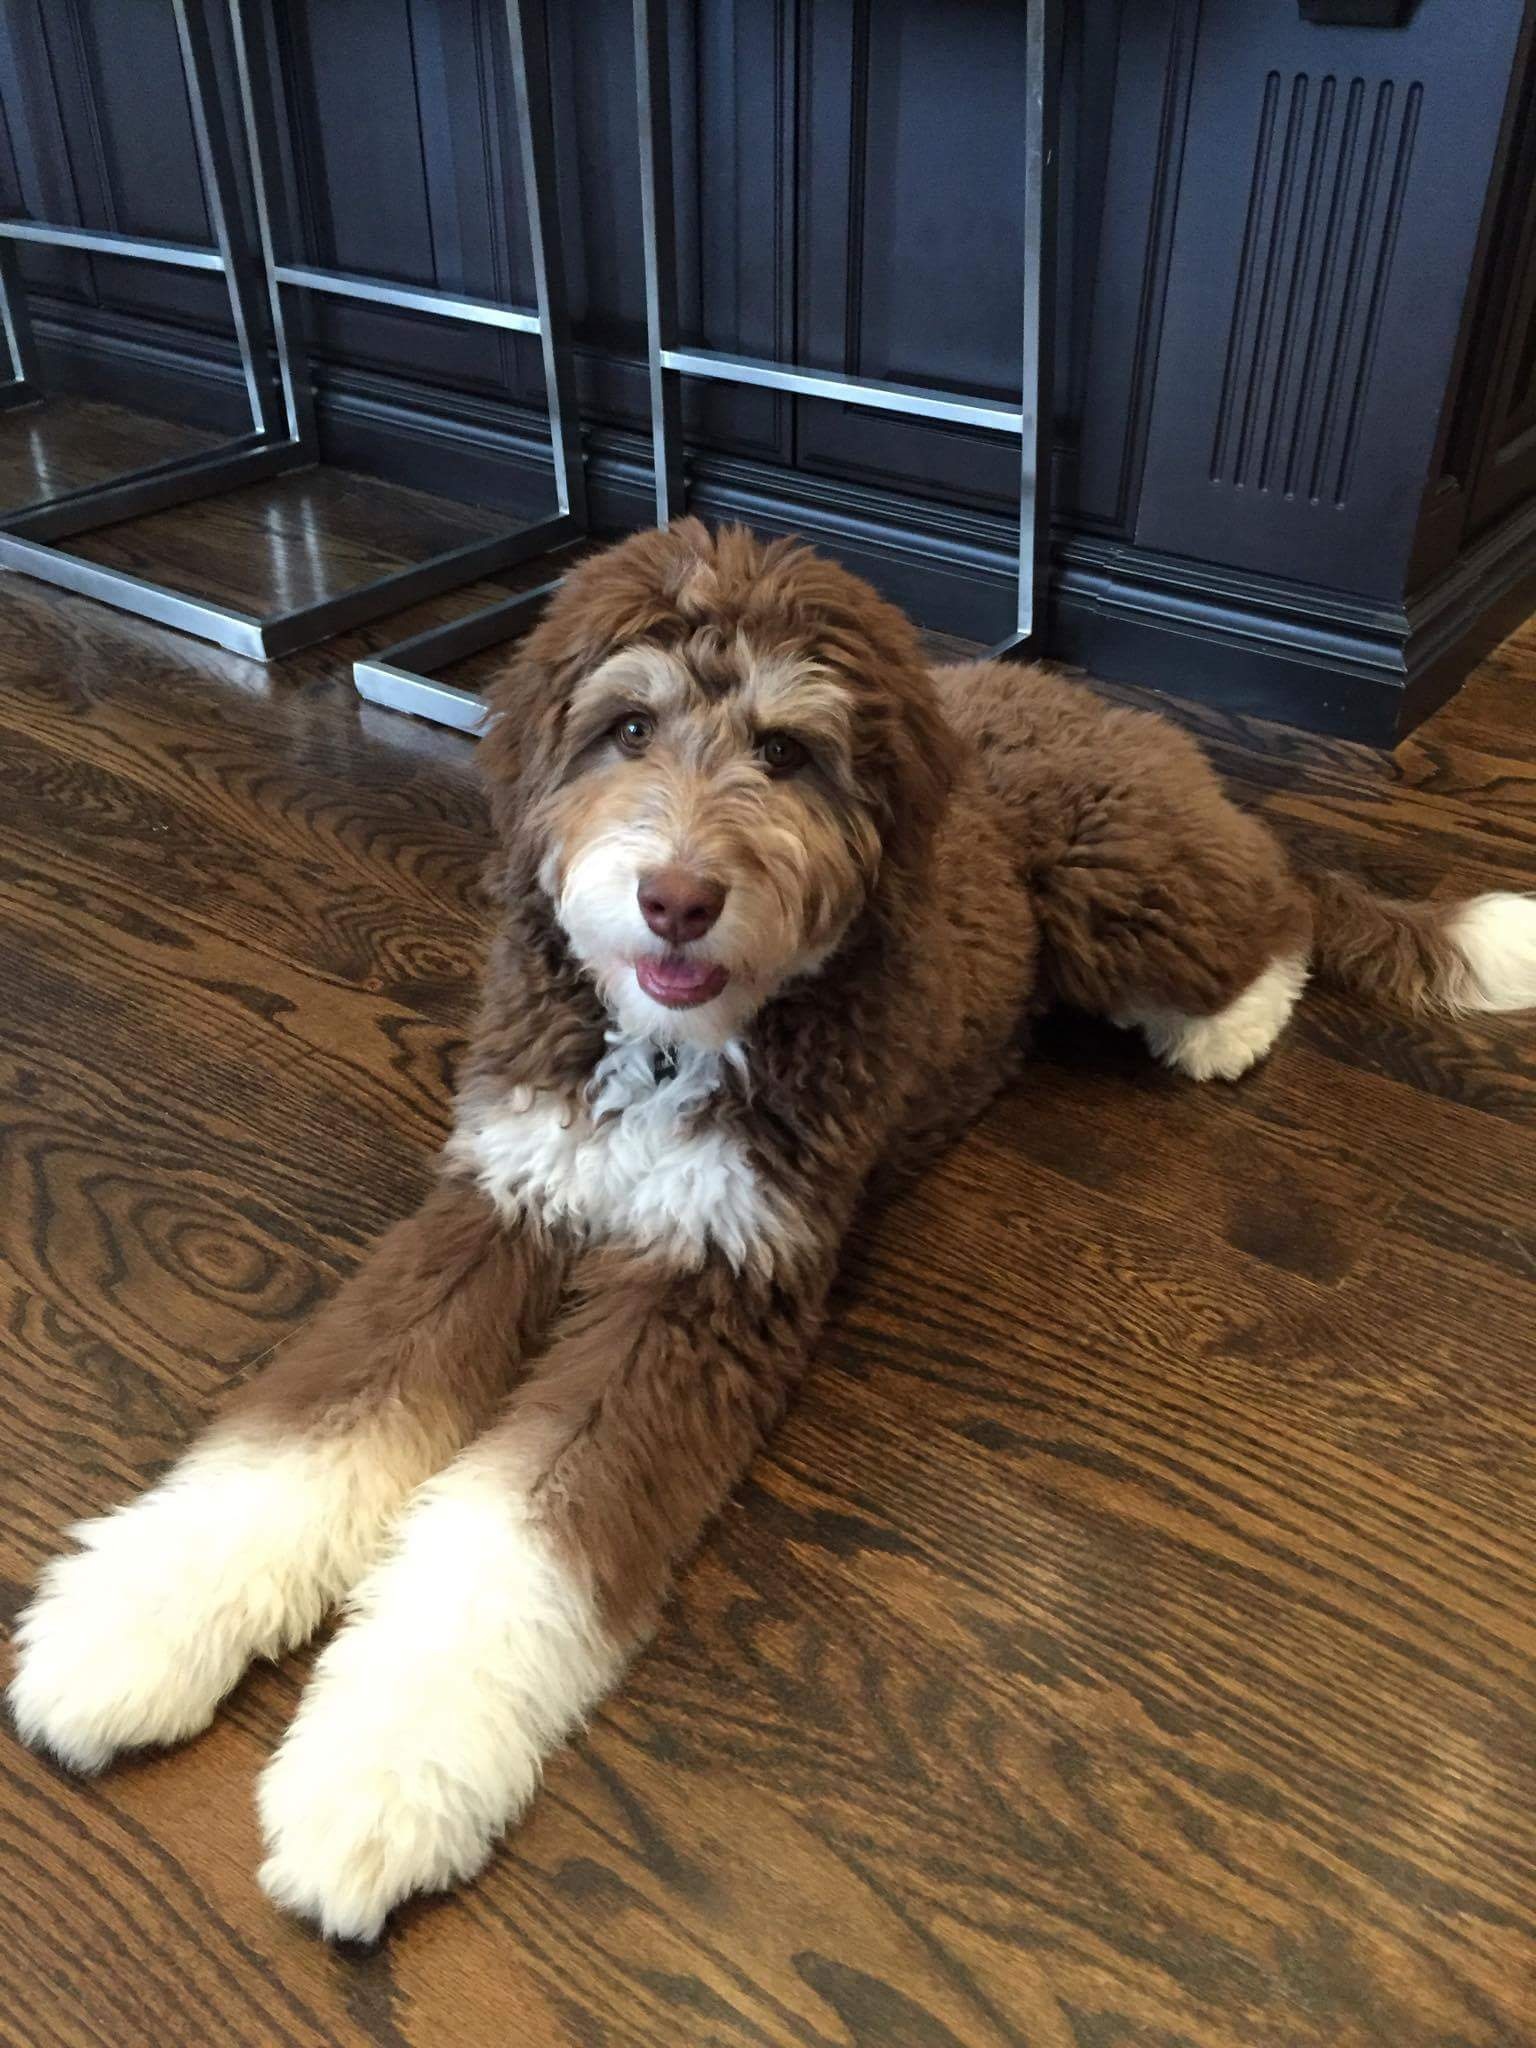 Tuuka - F1 Standard Aussiedoodle from Dreamydoodles.com